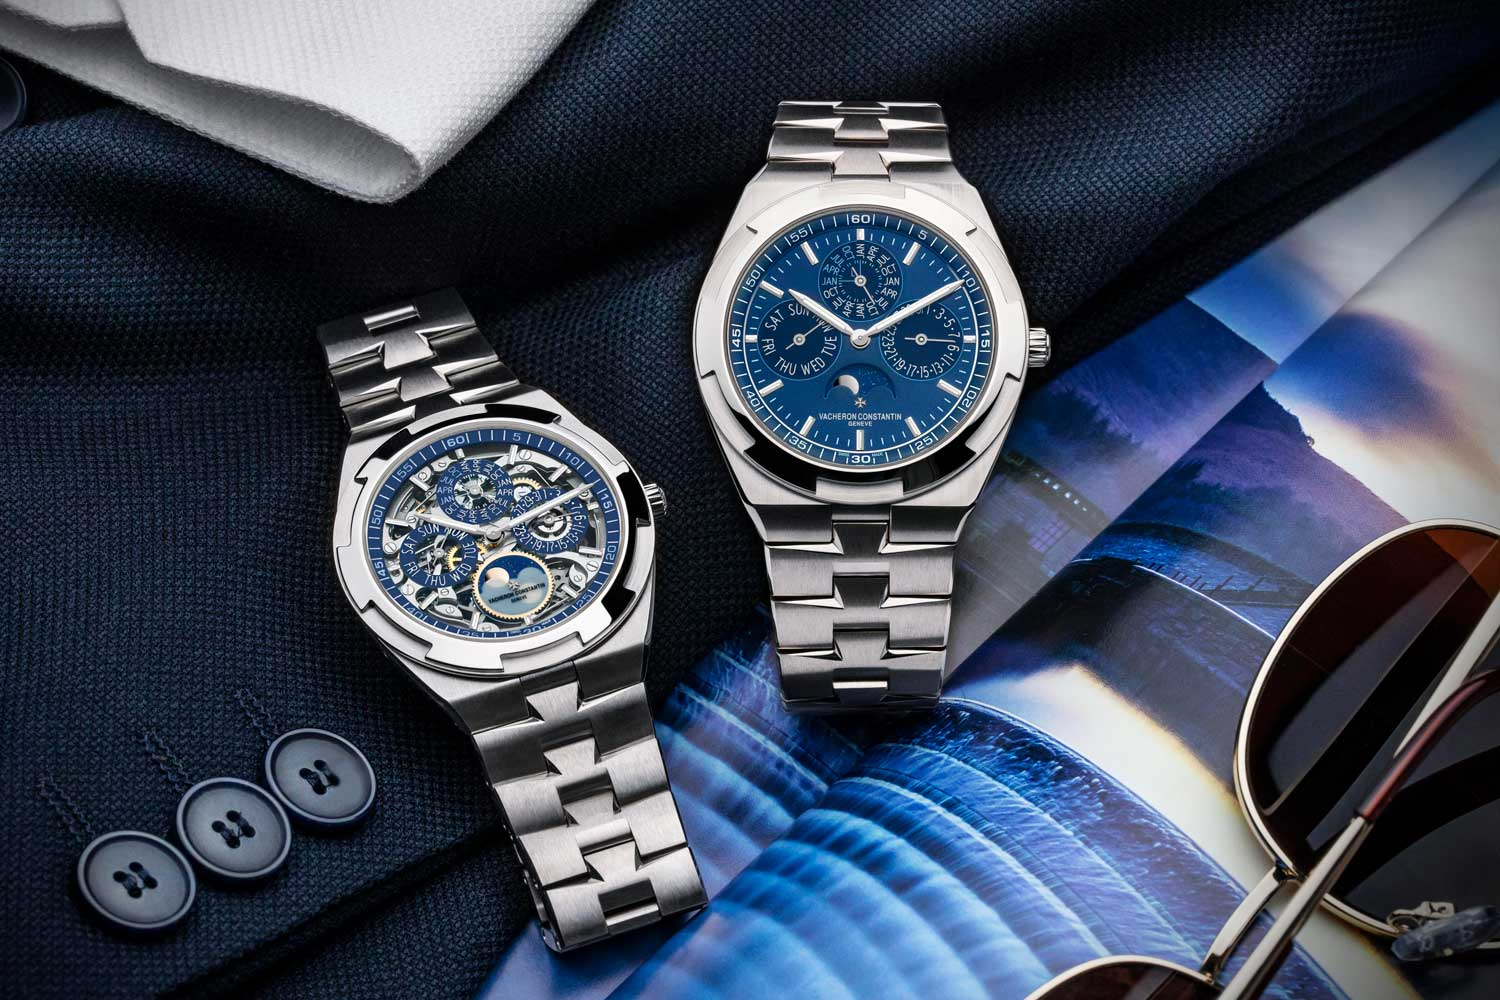 The Overseas Perpetual Calendar Ultra Thin Skeleton and the Overseas Perpetual Calendar Ultra Thin are powered by Calibre 1120